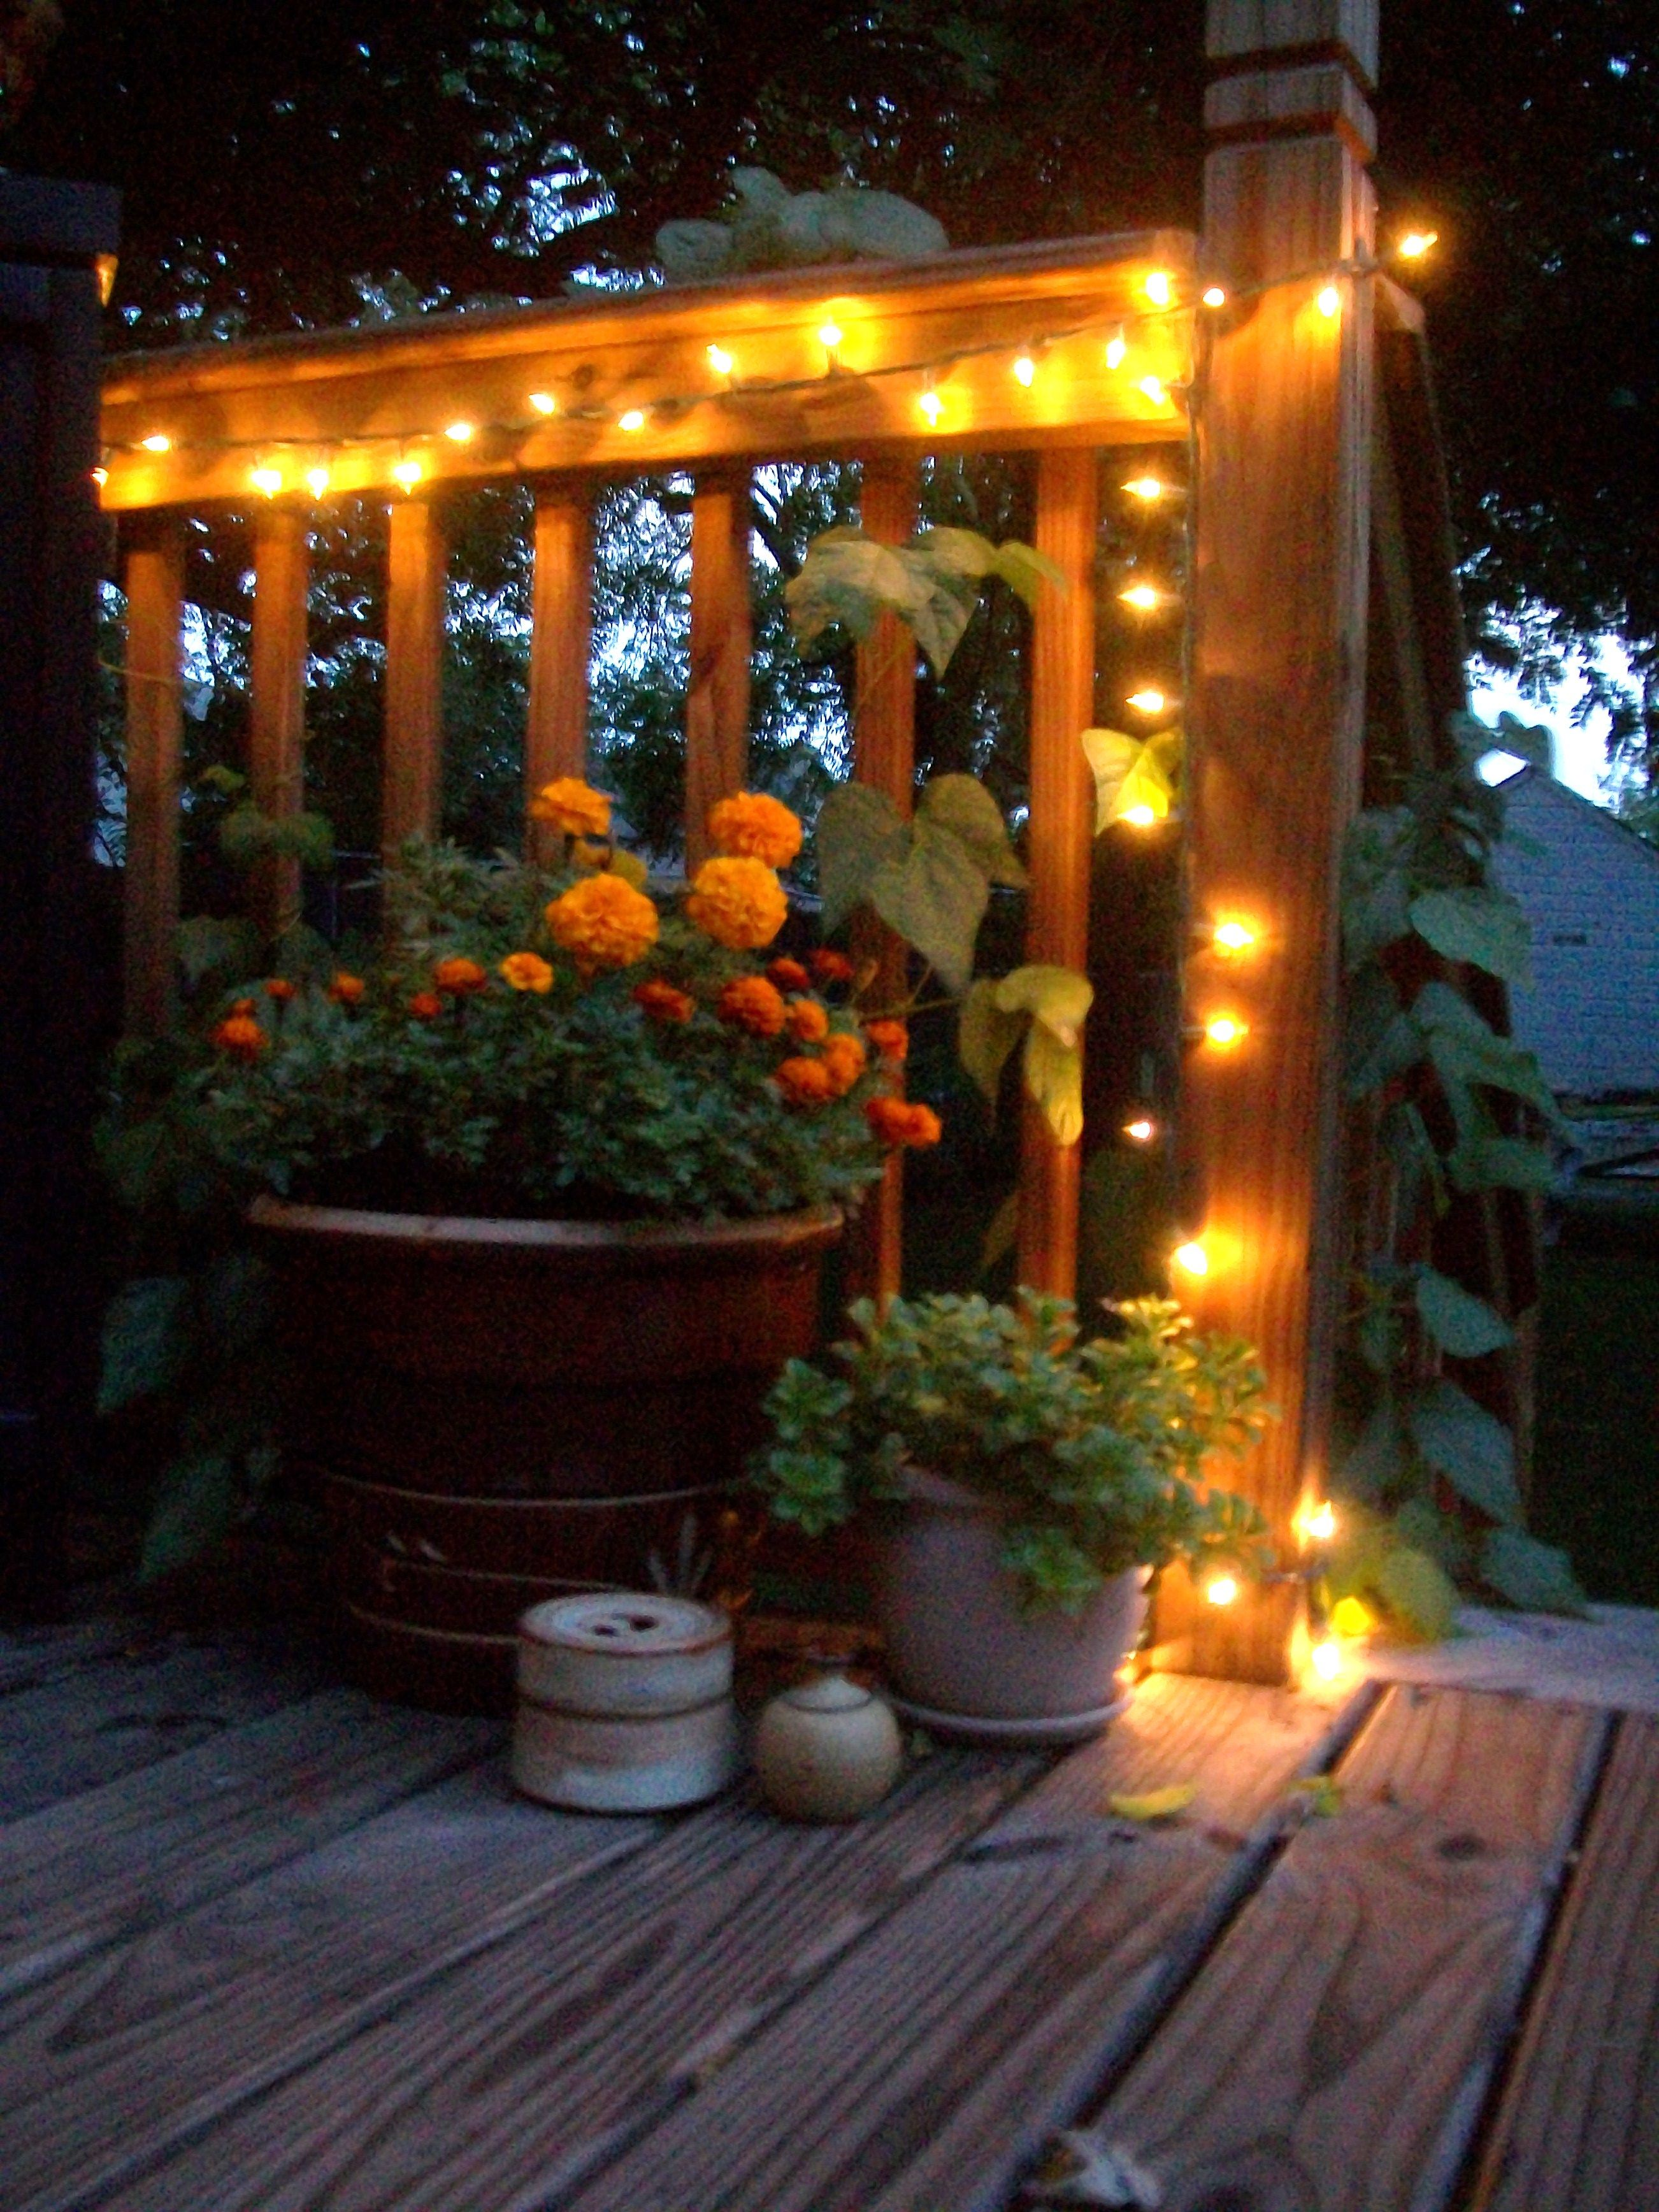 Little lights thinking of putting these under the deck